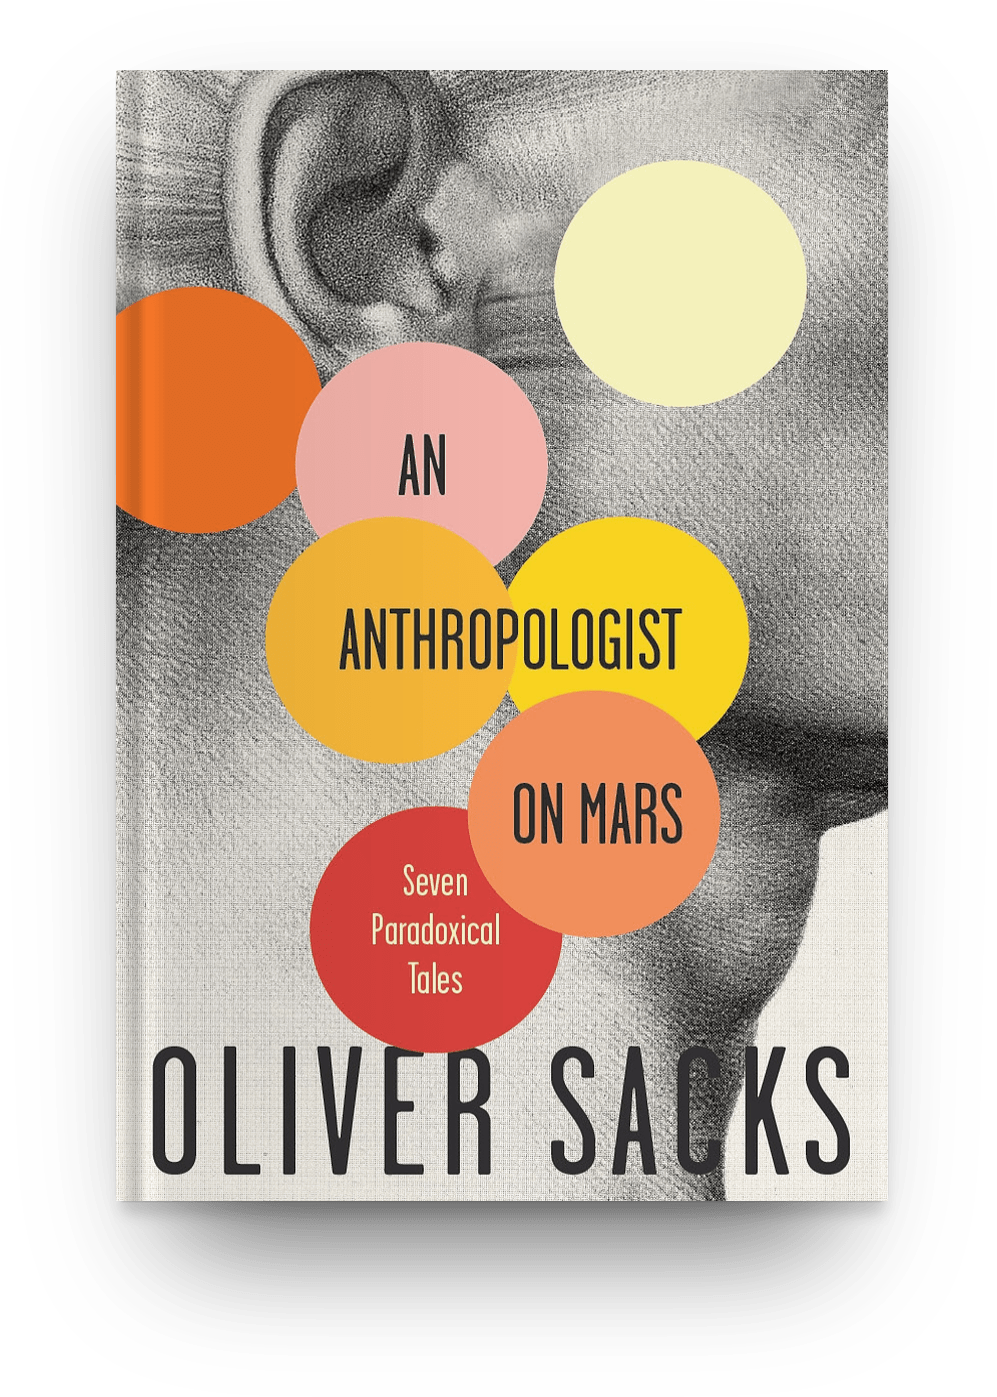 An Anthropologist on Mars (1995) book cover